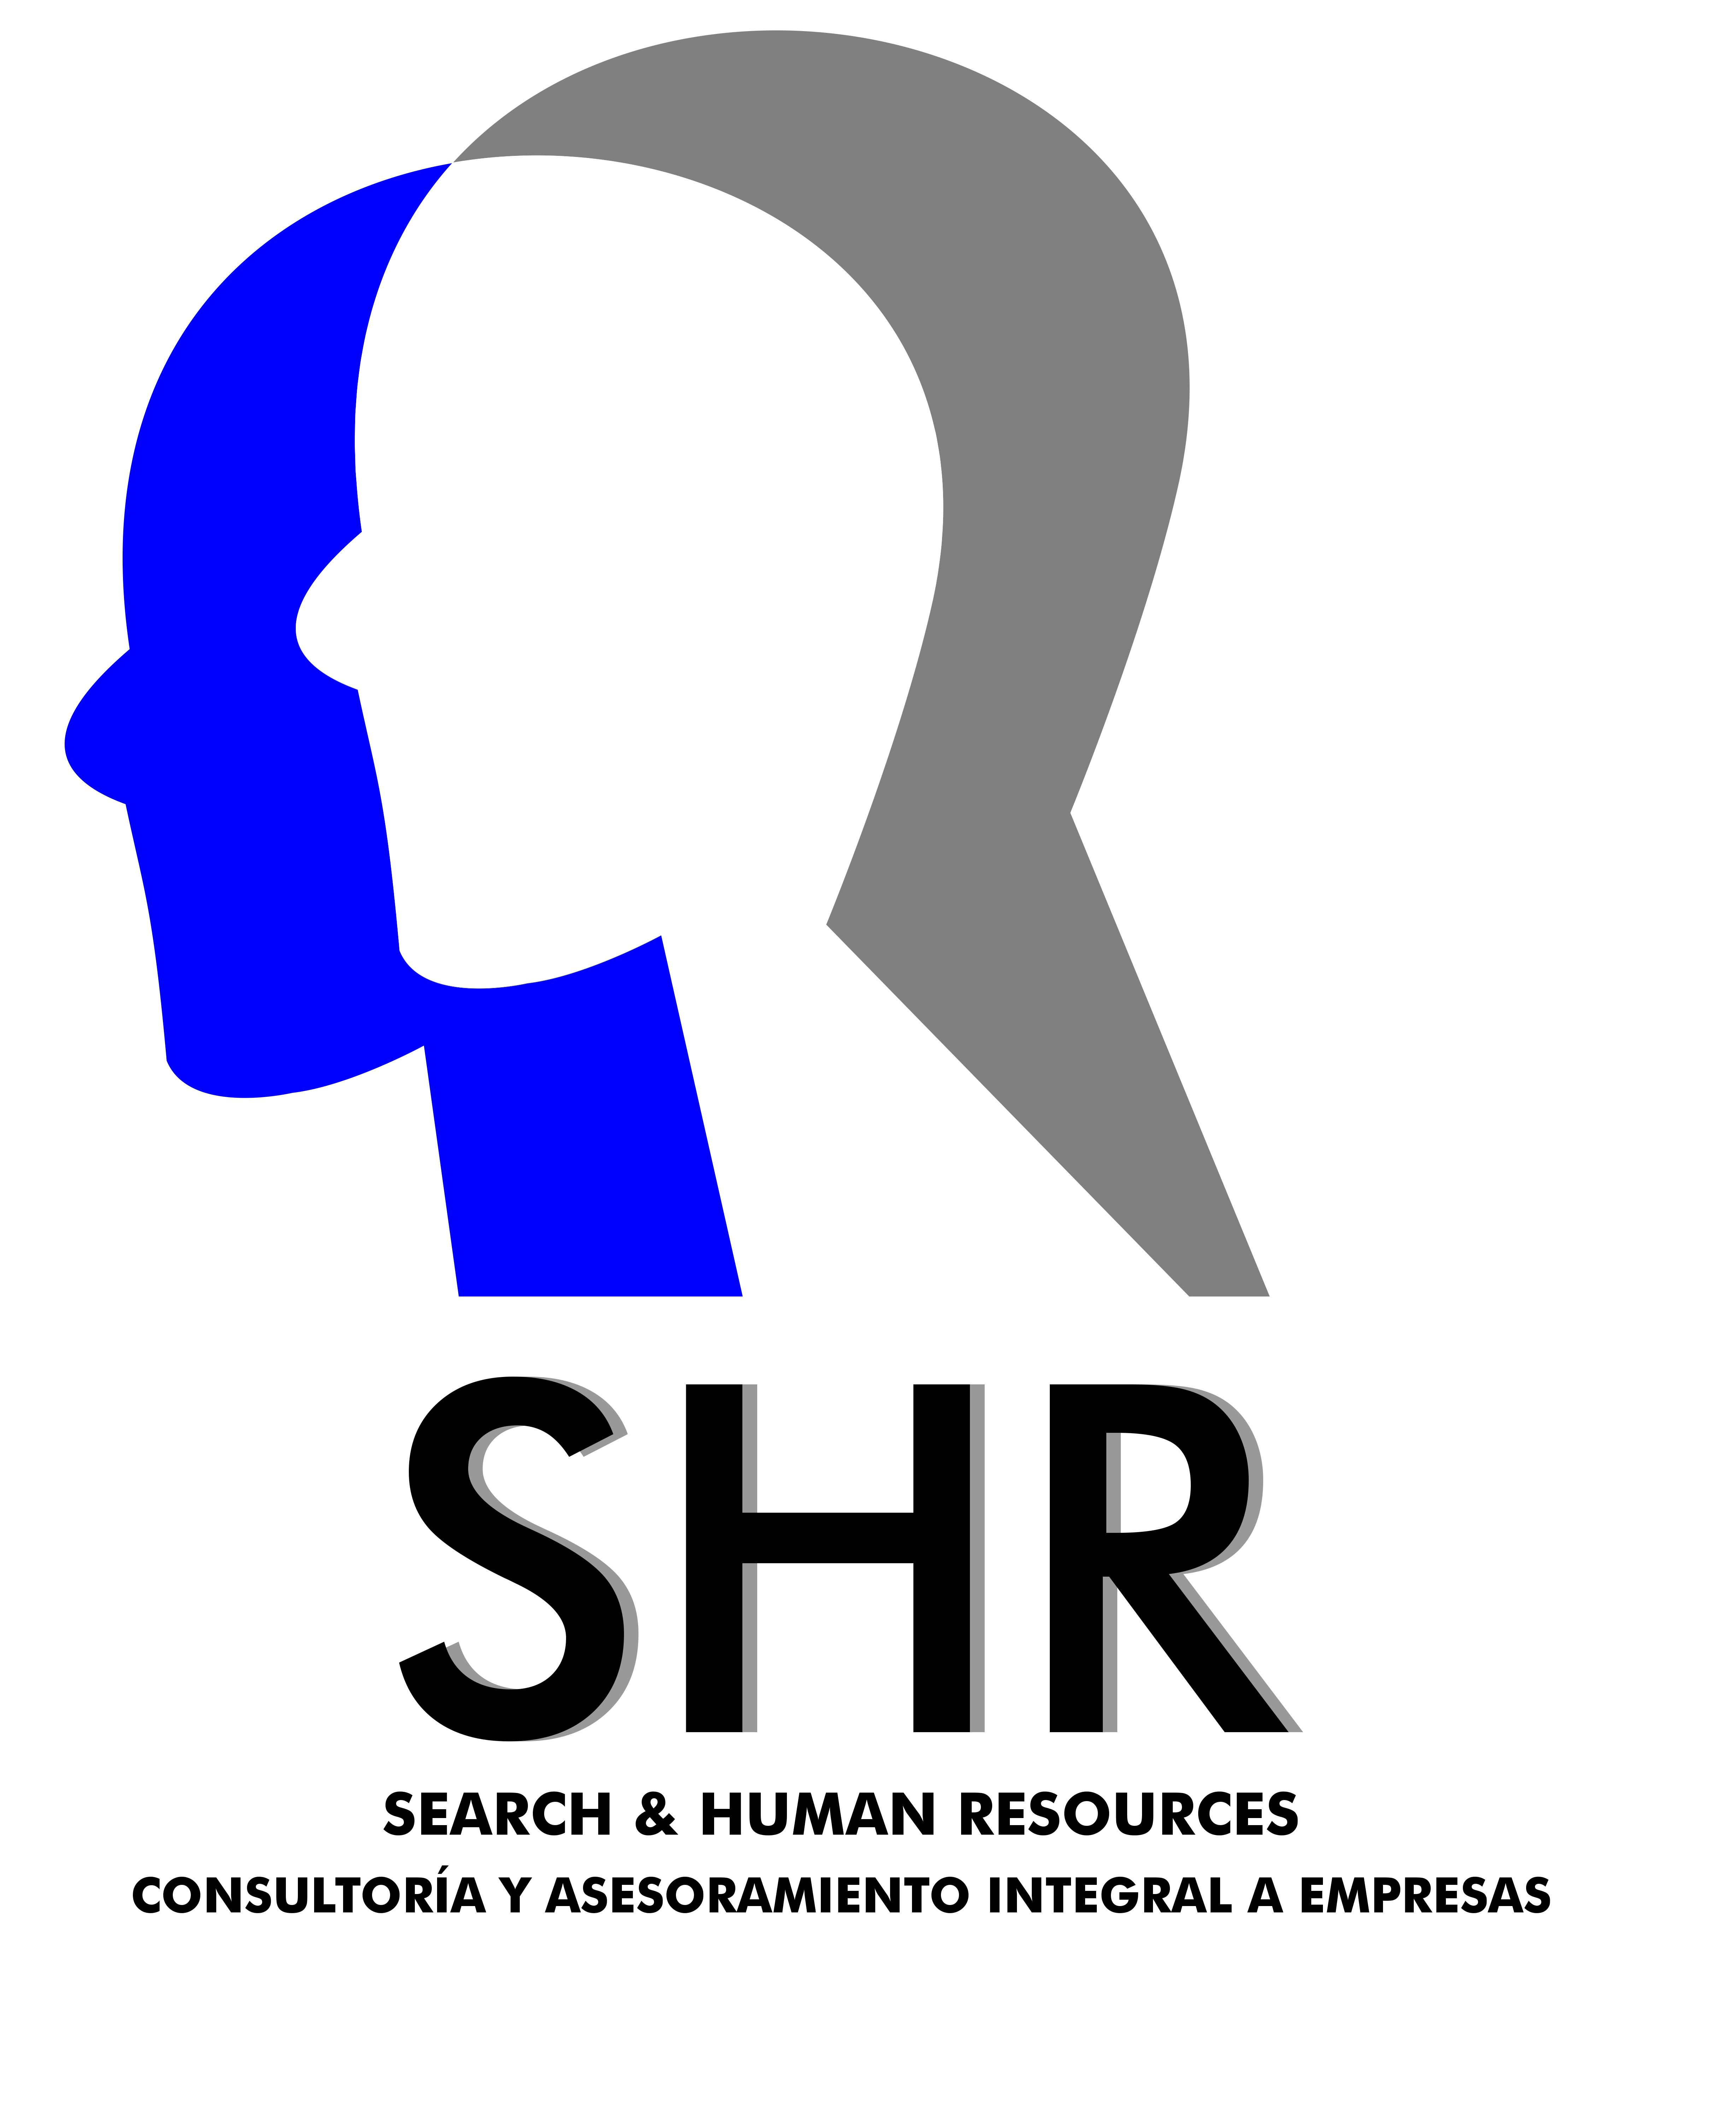 SEARCH & HUMAN RESOURCES